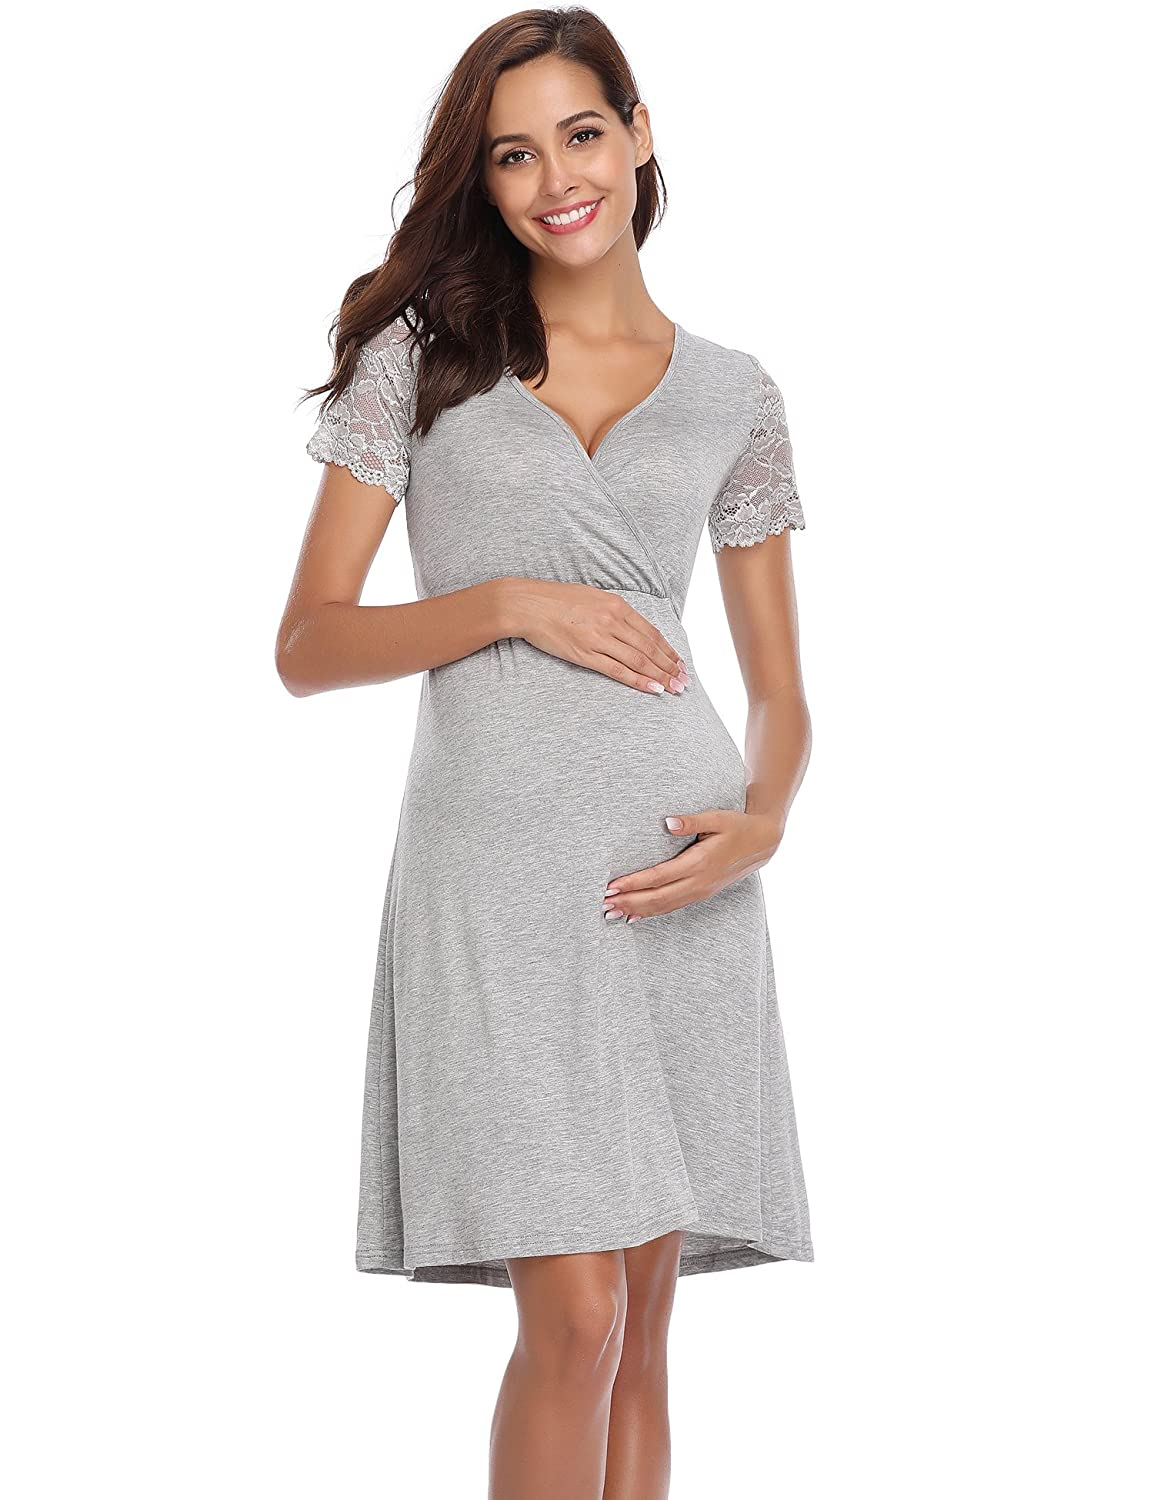 Aibrou Womens Maternity Dresses/Baby Shower Dress/Pregnancy Nightgown  Womens Delivery Gown at Amazon Women's Clothing store: